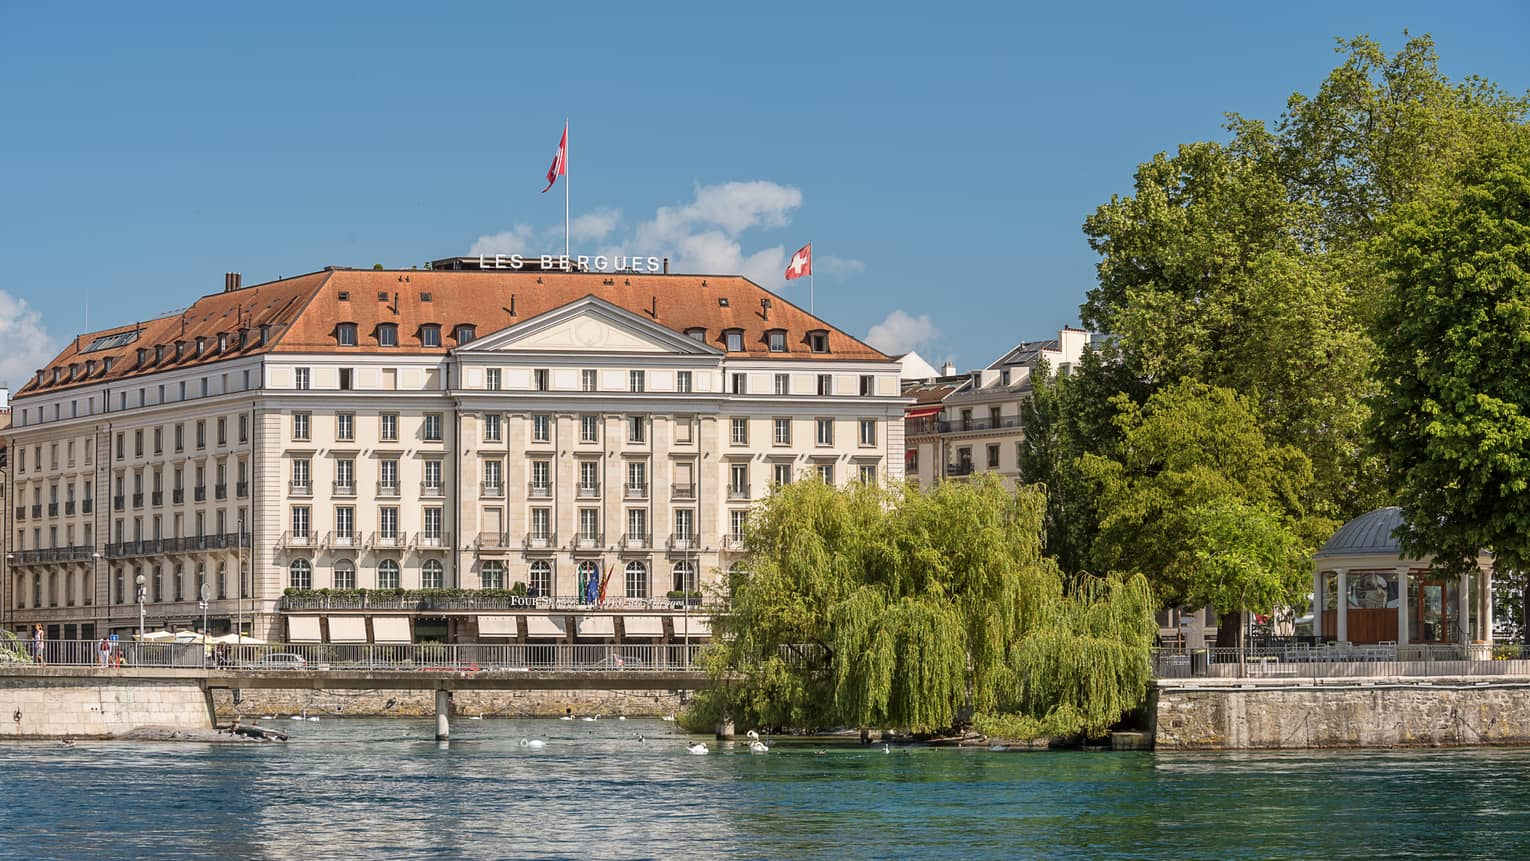 Exterior view of Four Seasons Hotel des Bergues historic building on sunny day by lake